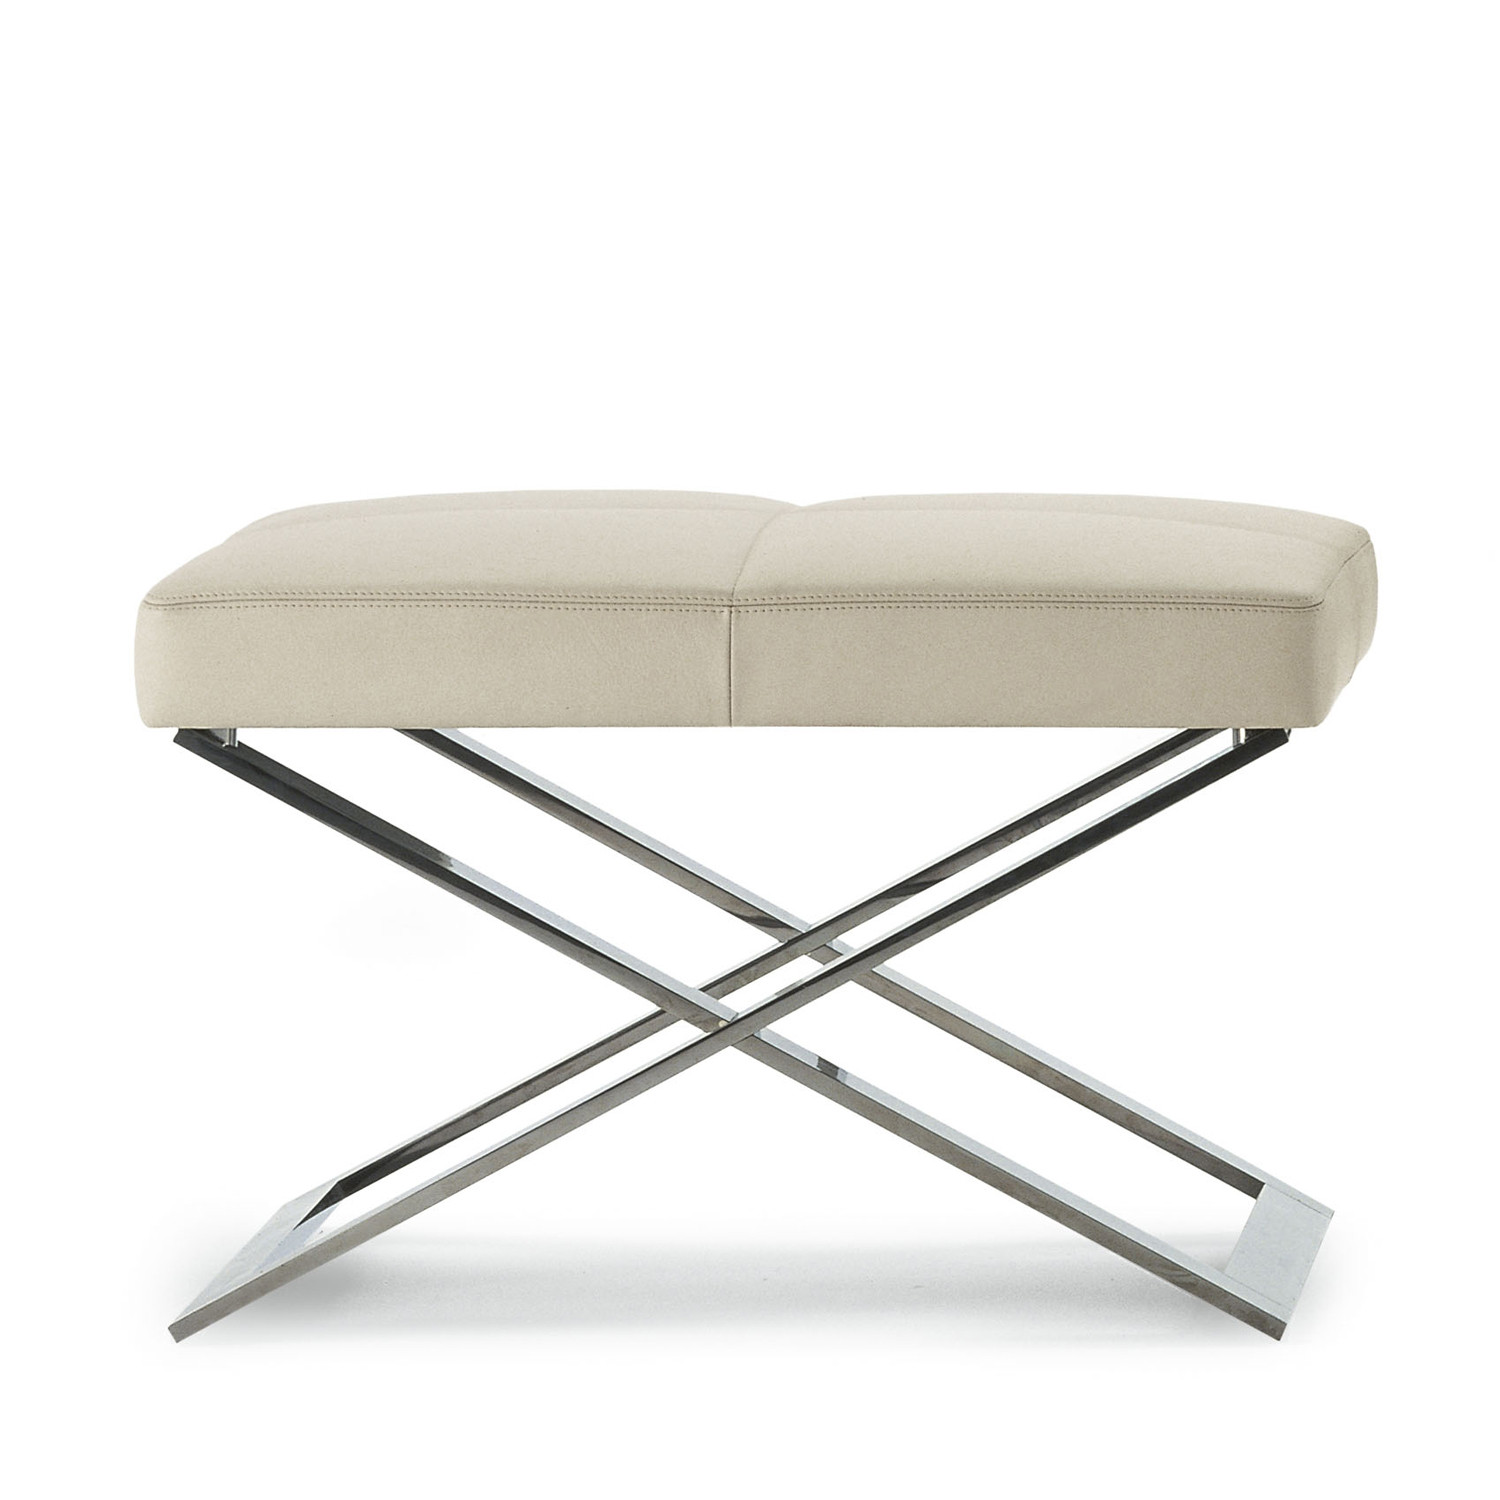 Aster X Pouf Footstool from Poltrona Frau